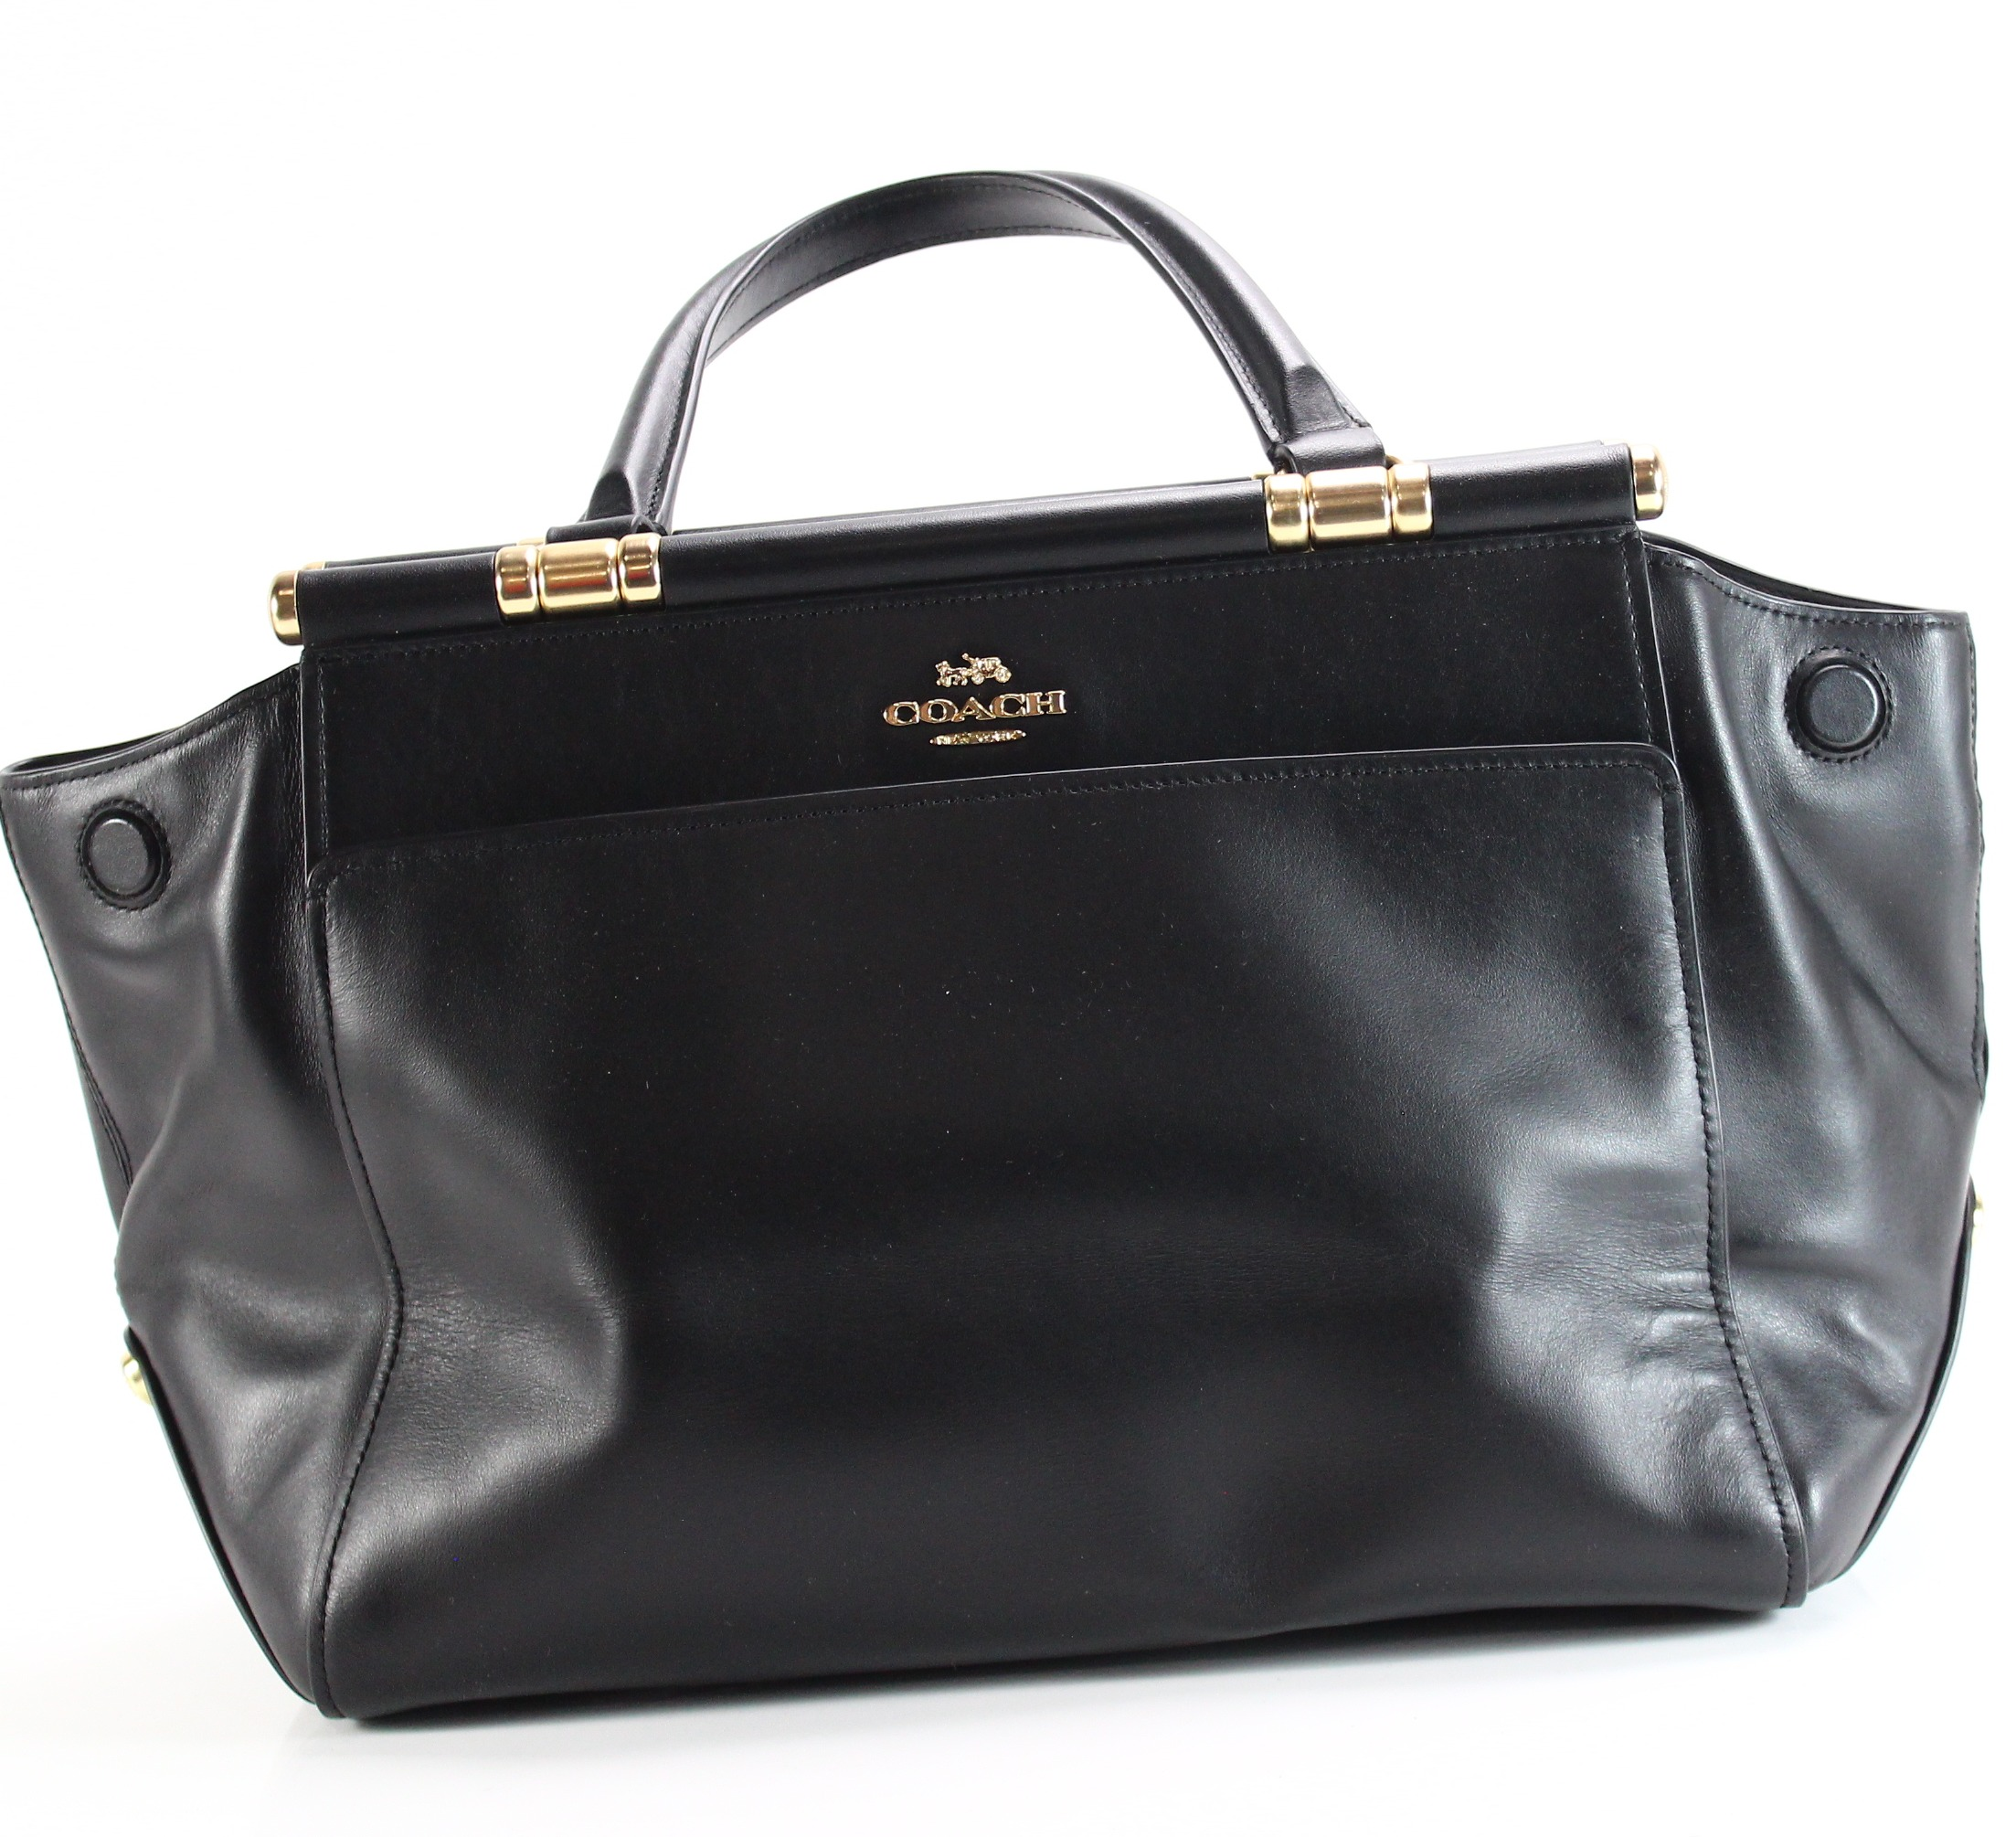 62c98bcdda We have more Coach in Size One Size - Click Here Click to see all Women's  Handbags & Purses in Size One Size